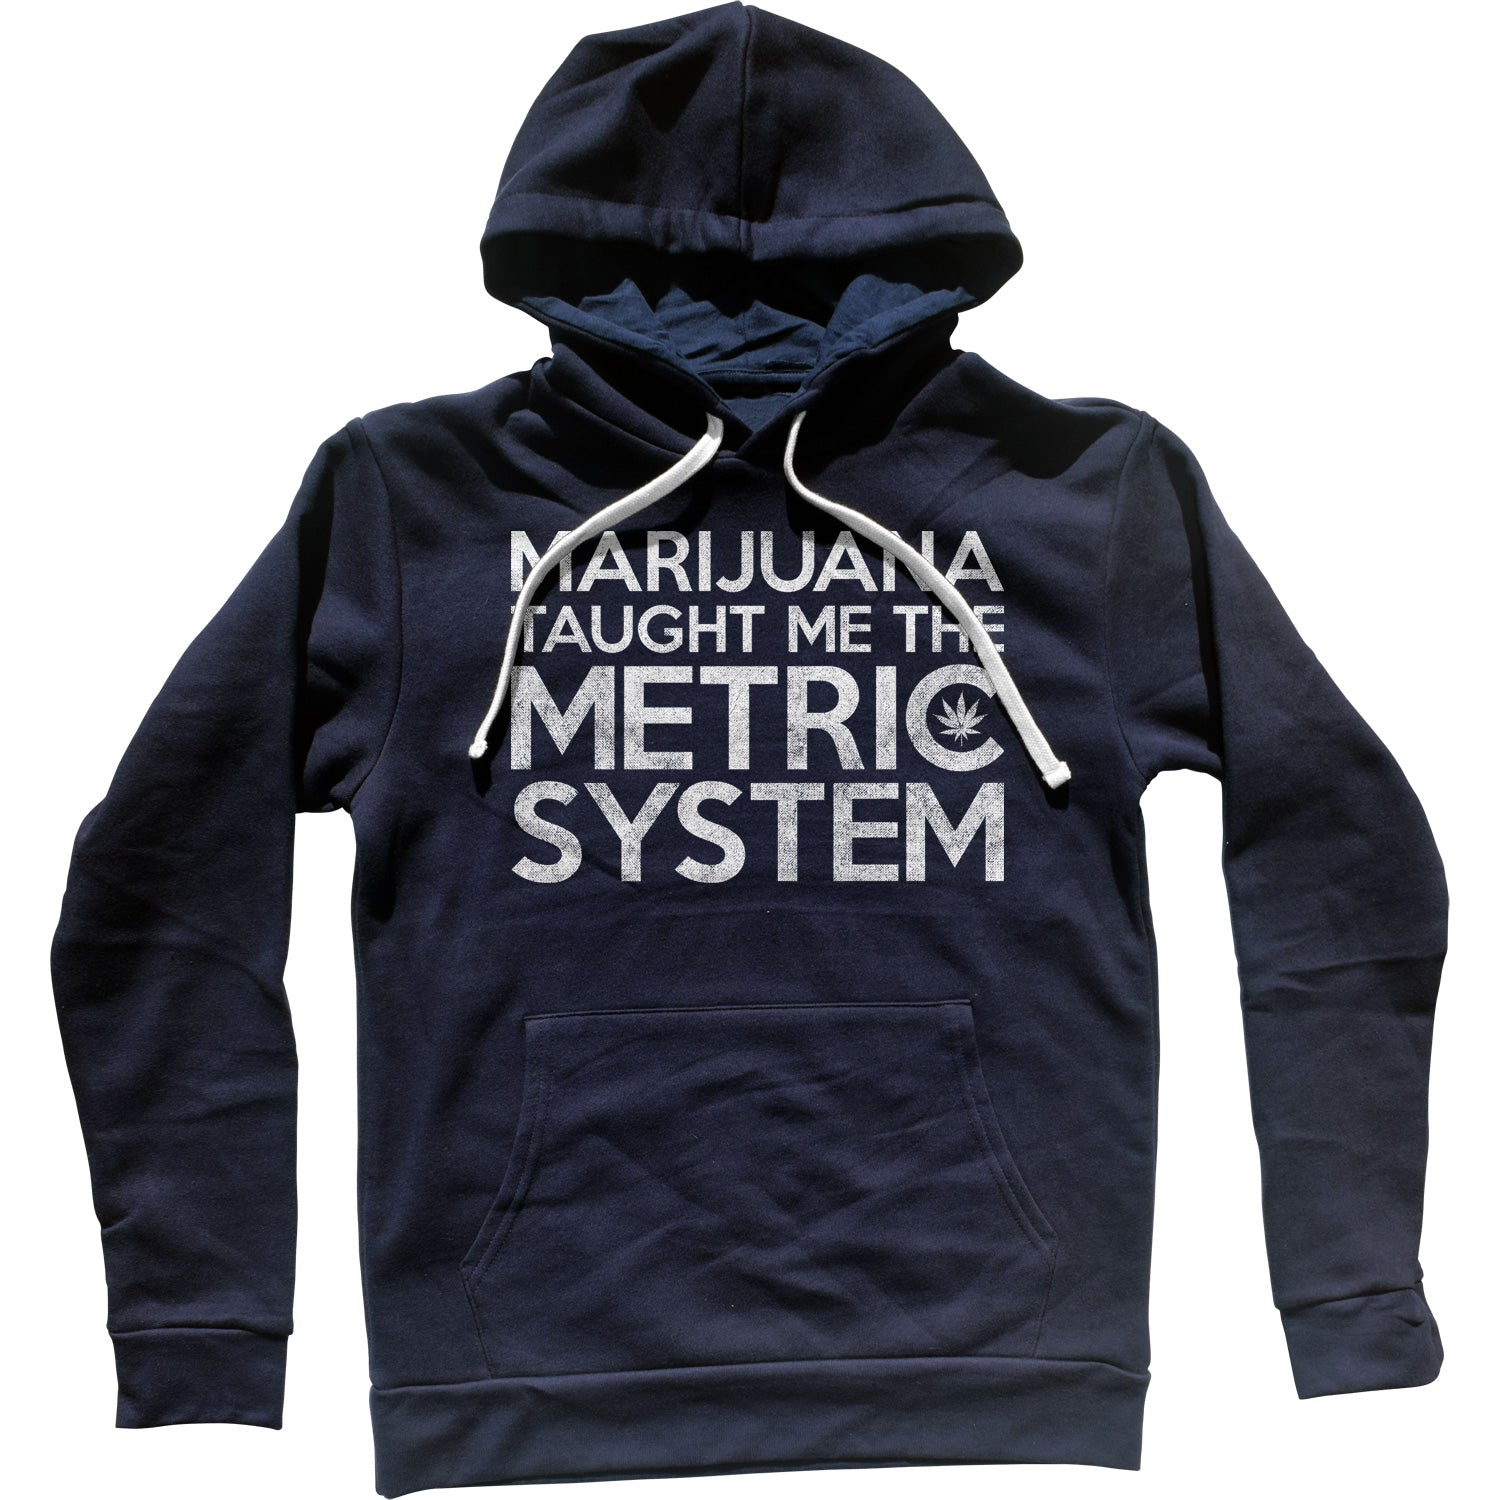 Marijuana Taught Me The Metric System Unisex Hoodie